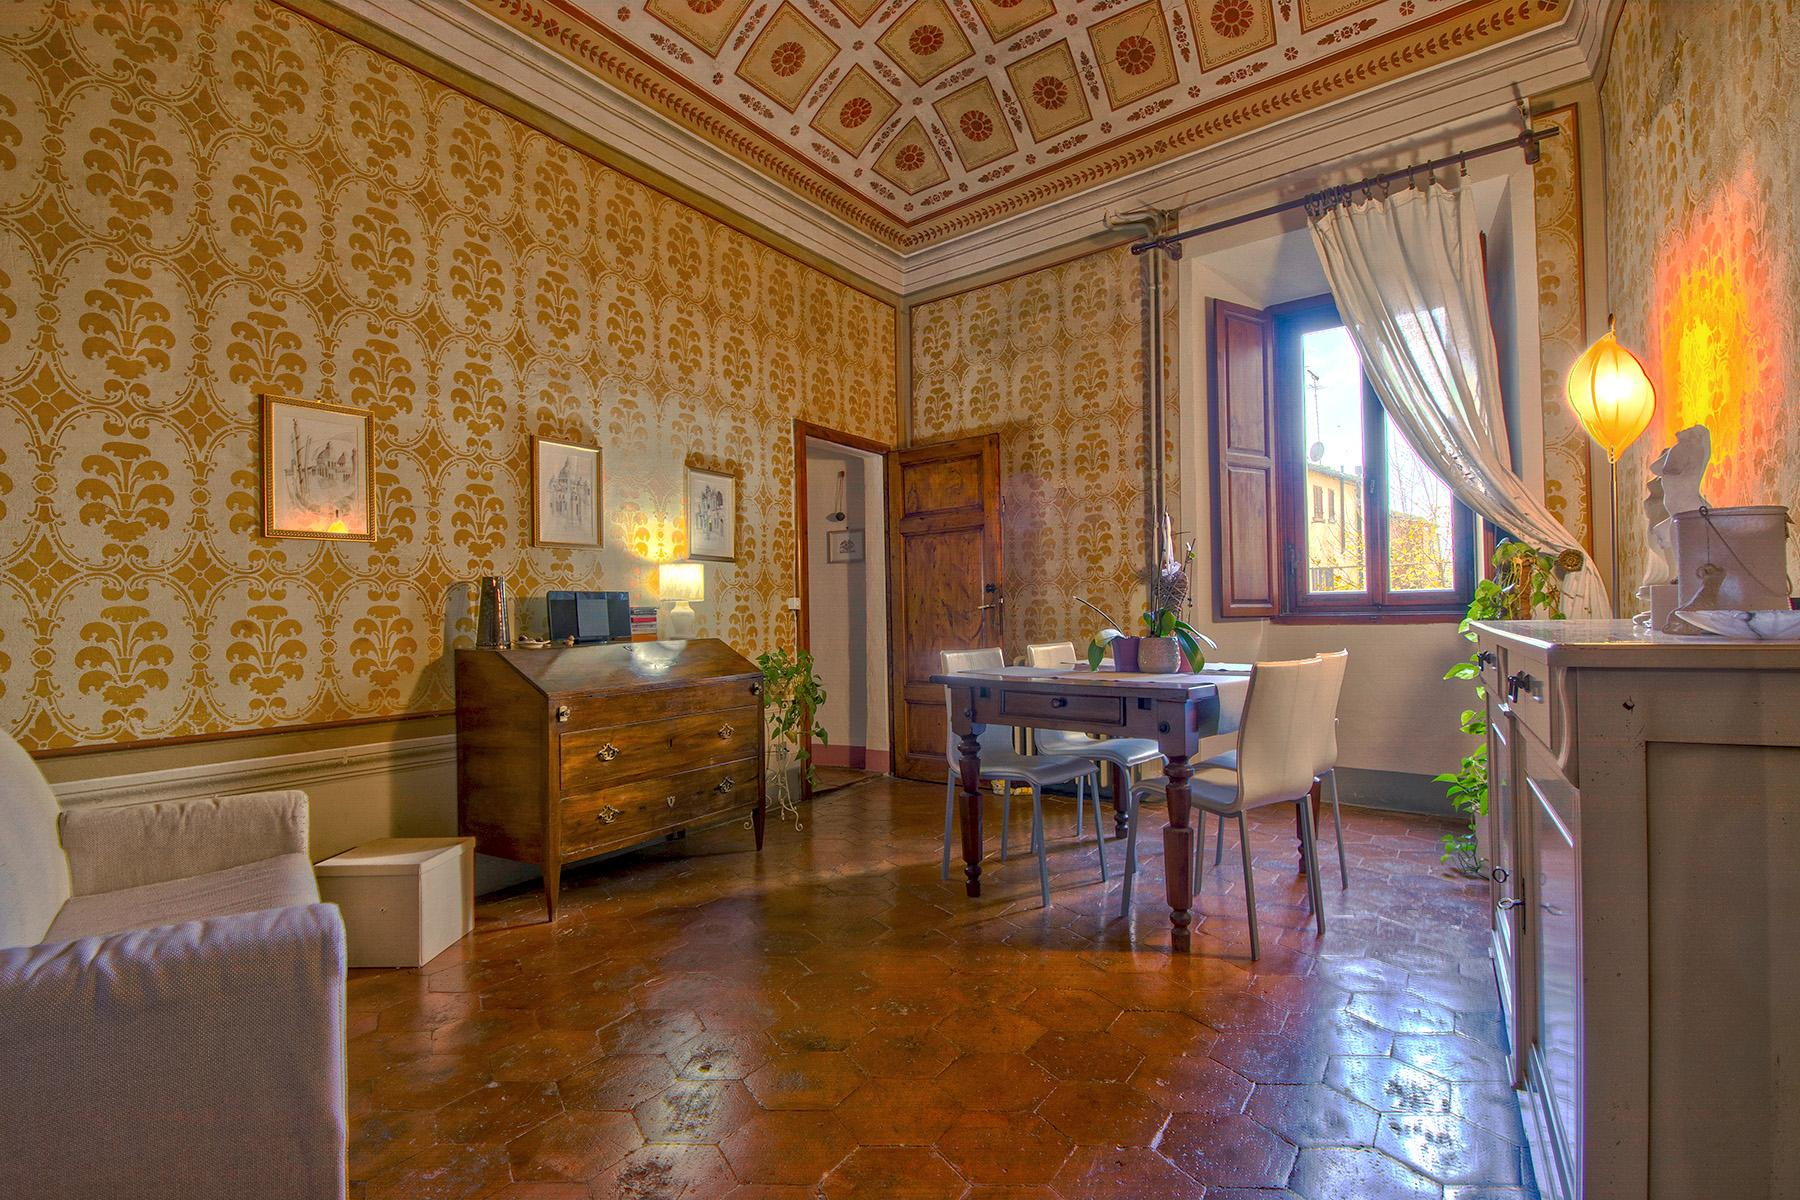 17th-century noble palace in the heart of Volterra - 5